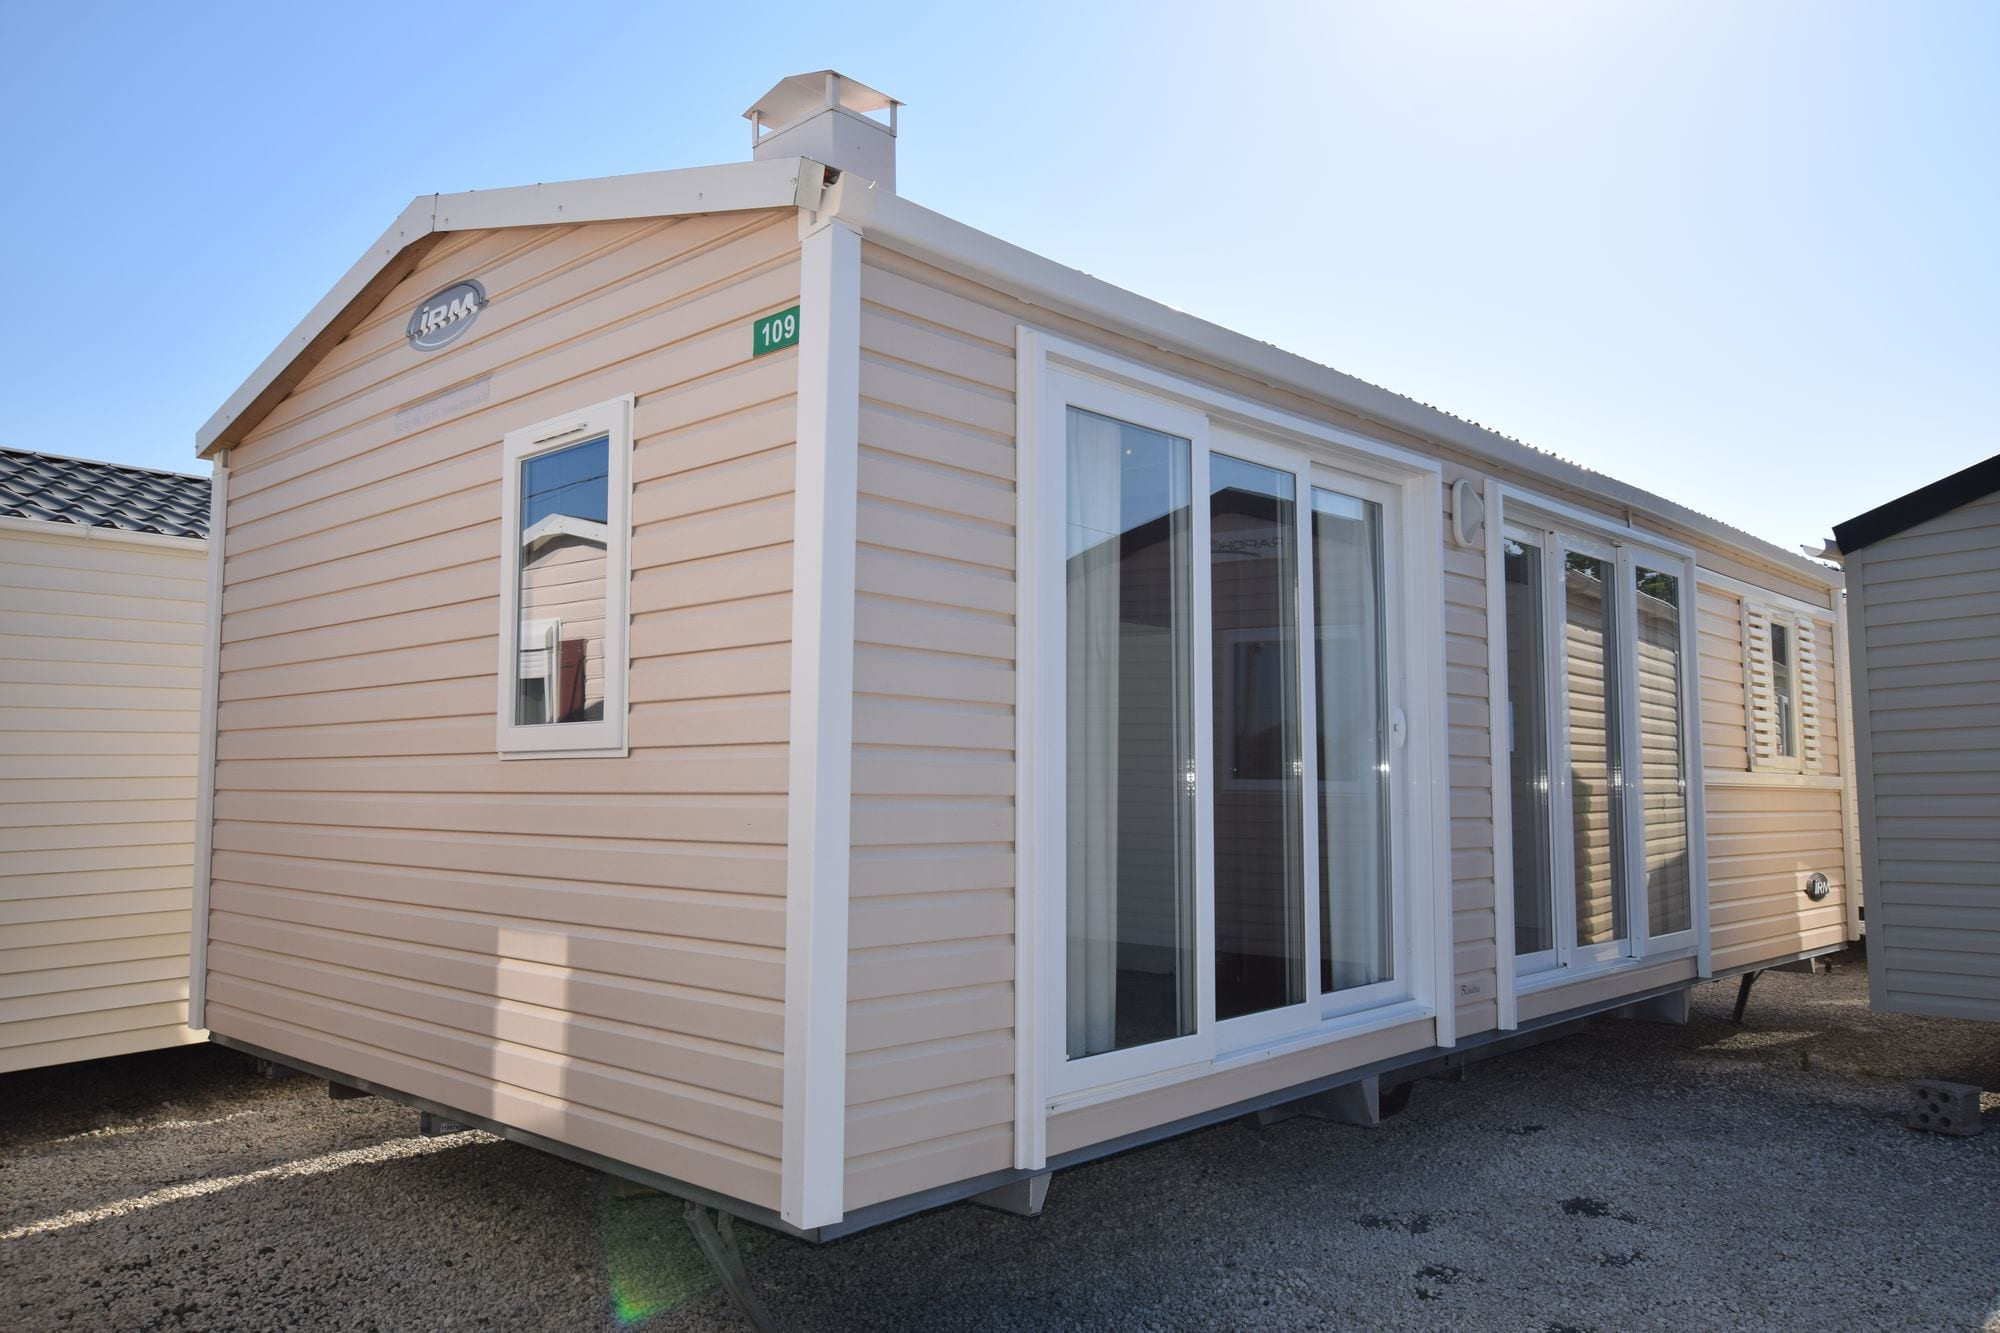 irm riviera mobil home d 39 occasion 16 000 zen mobil